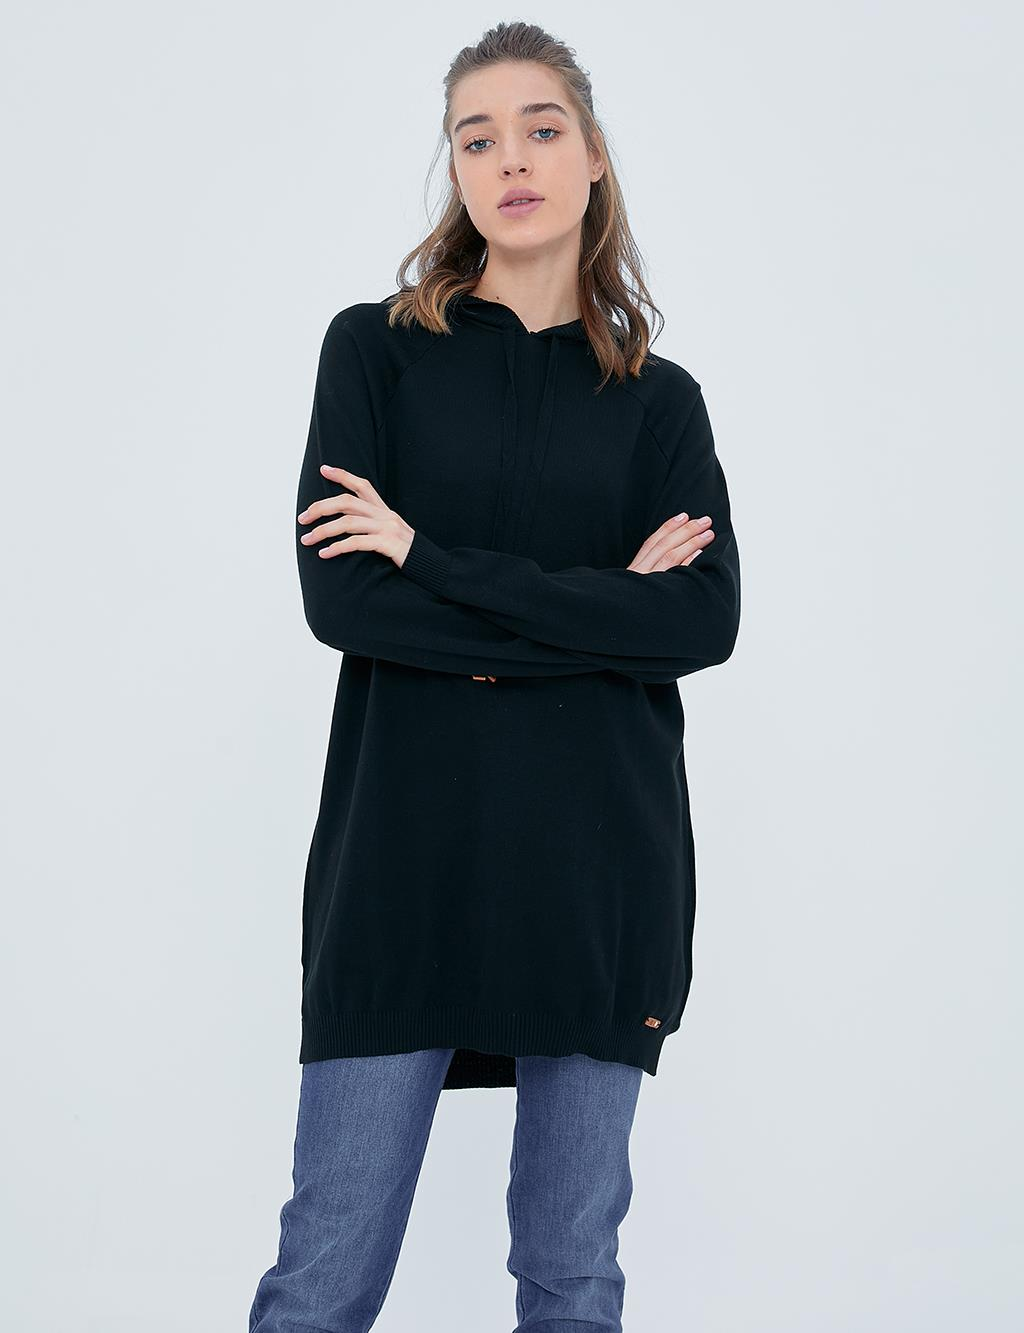 Hooded Knit Tunic A20 TRK09 Black